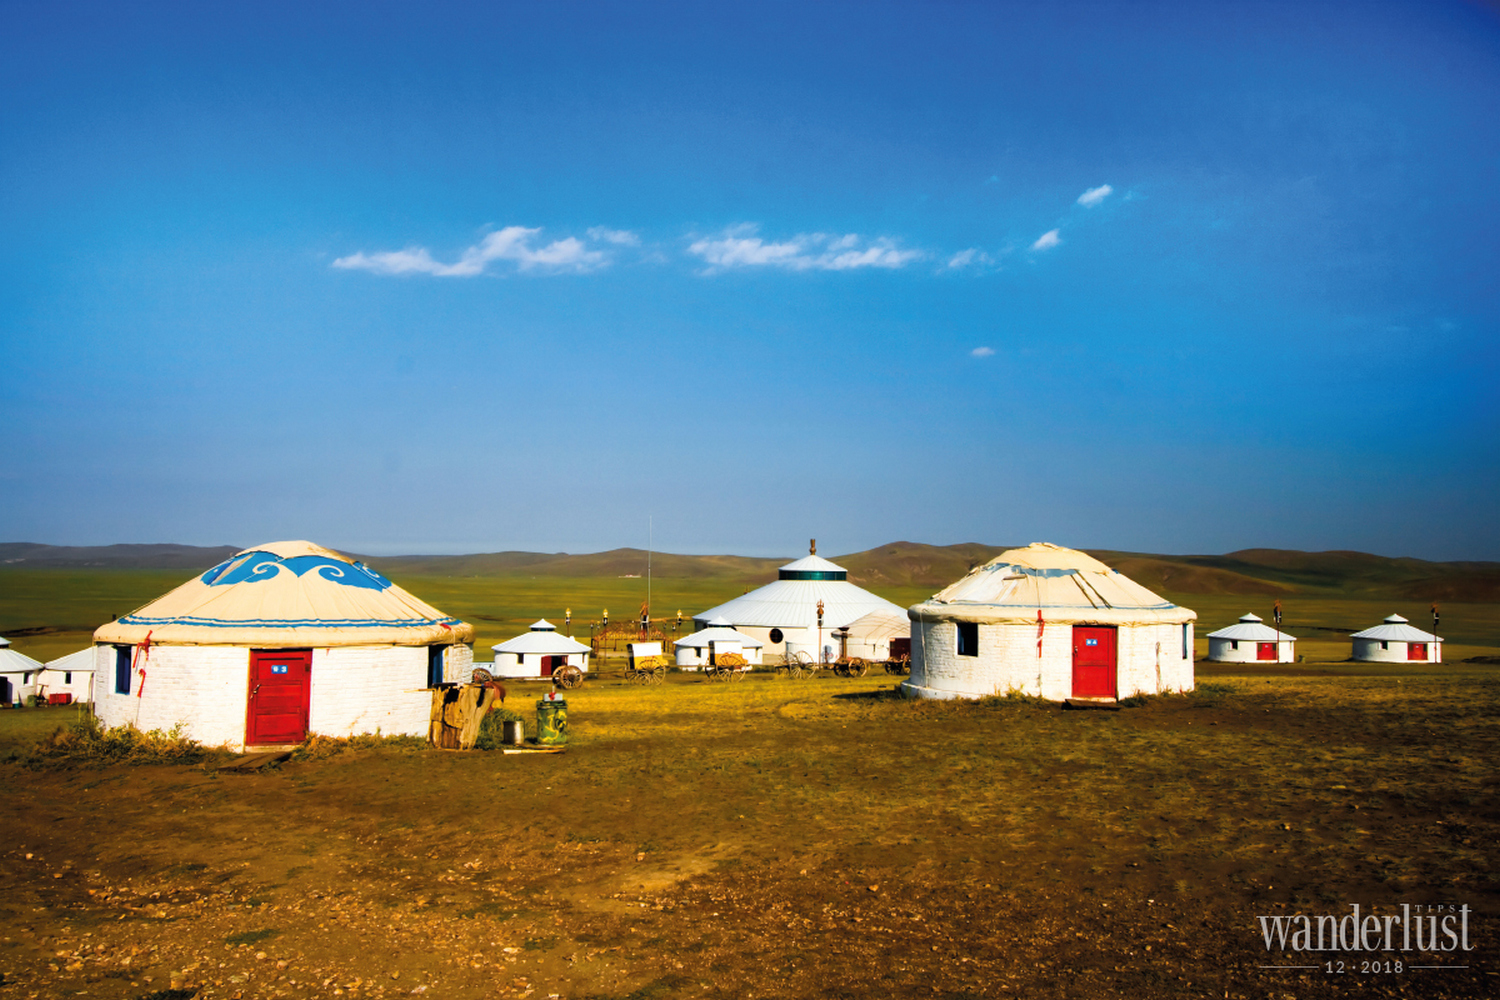 Wanderips Magazine | The unique yurt tent of the Mongols